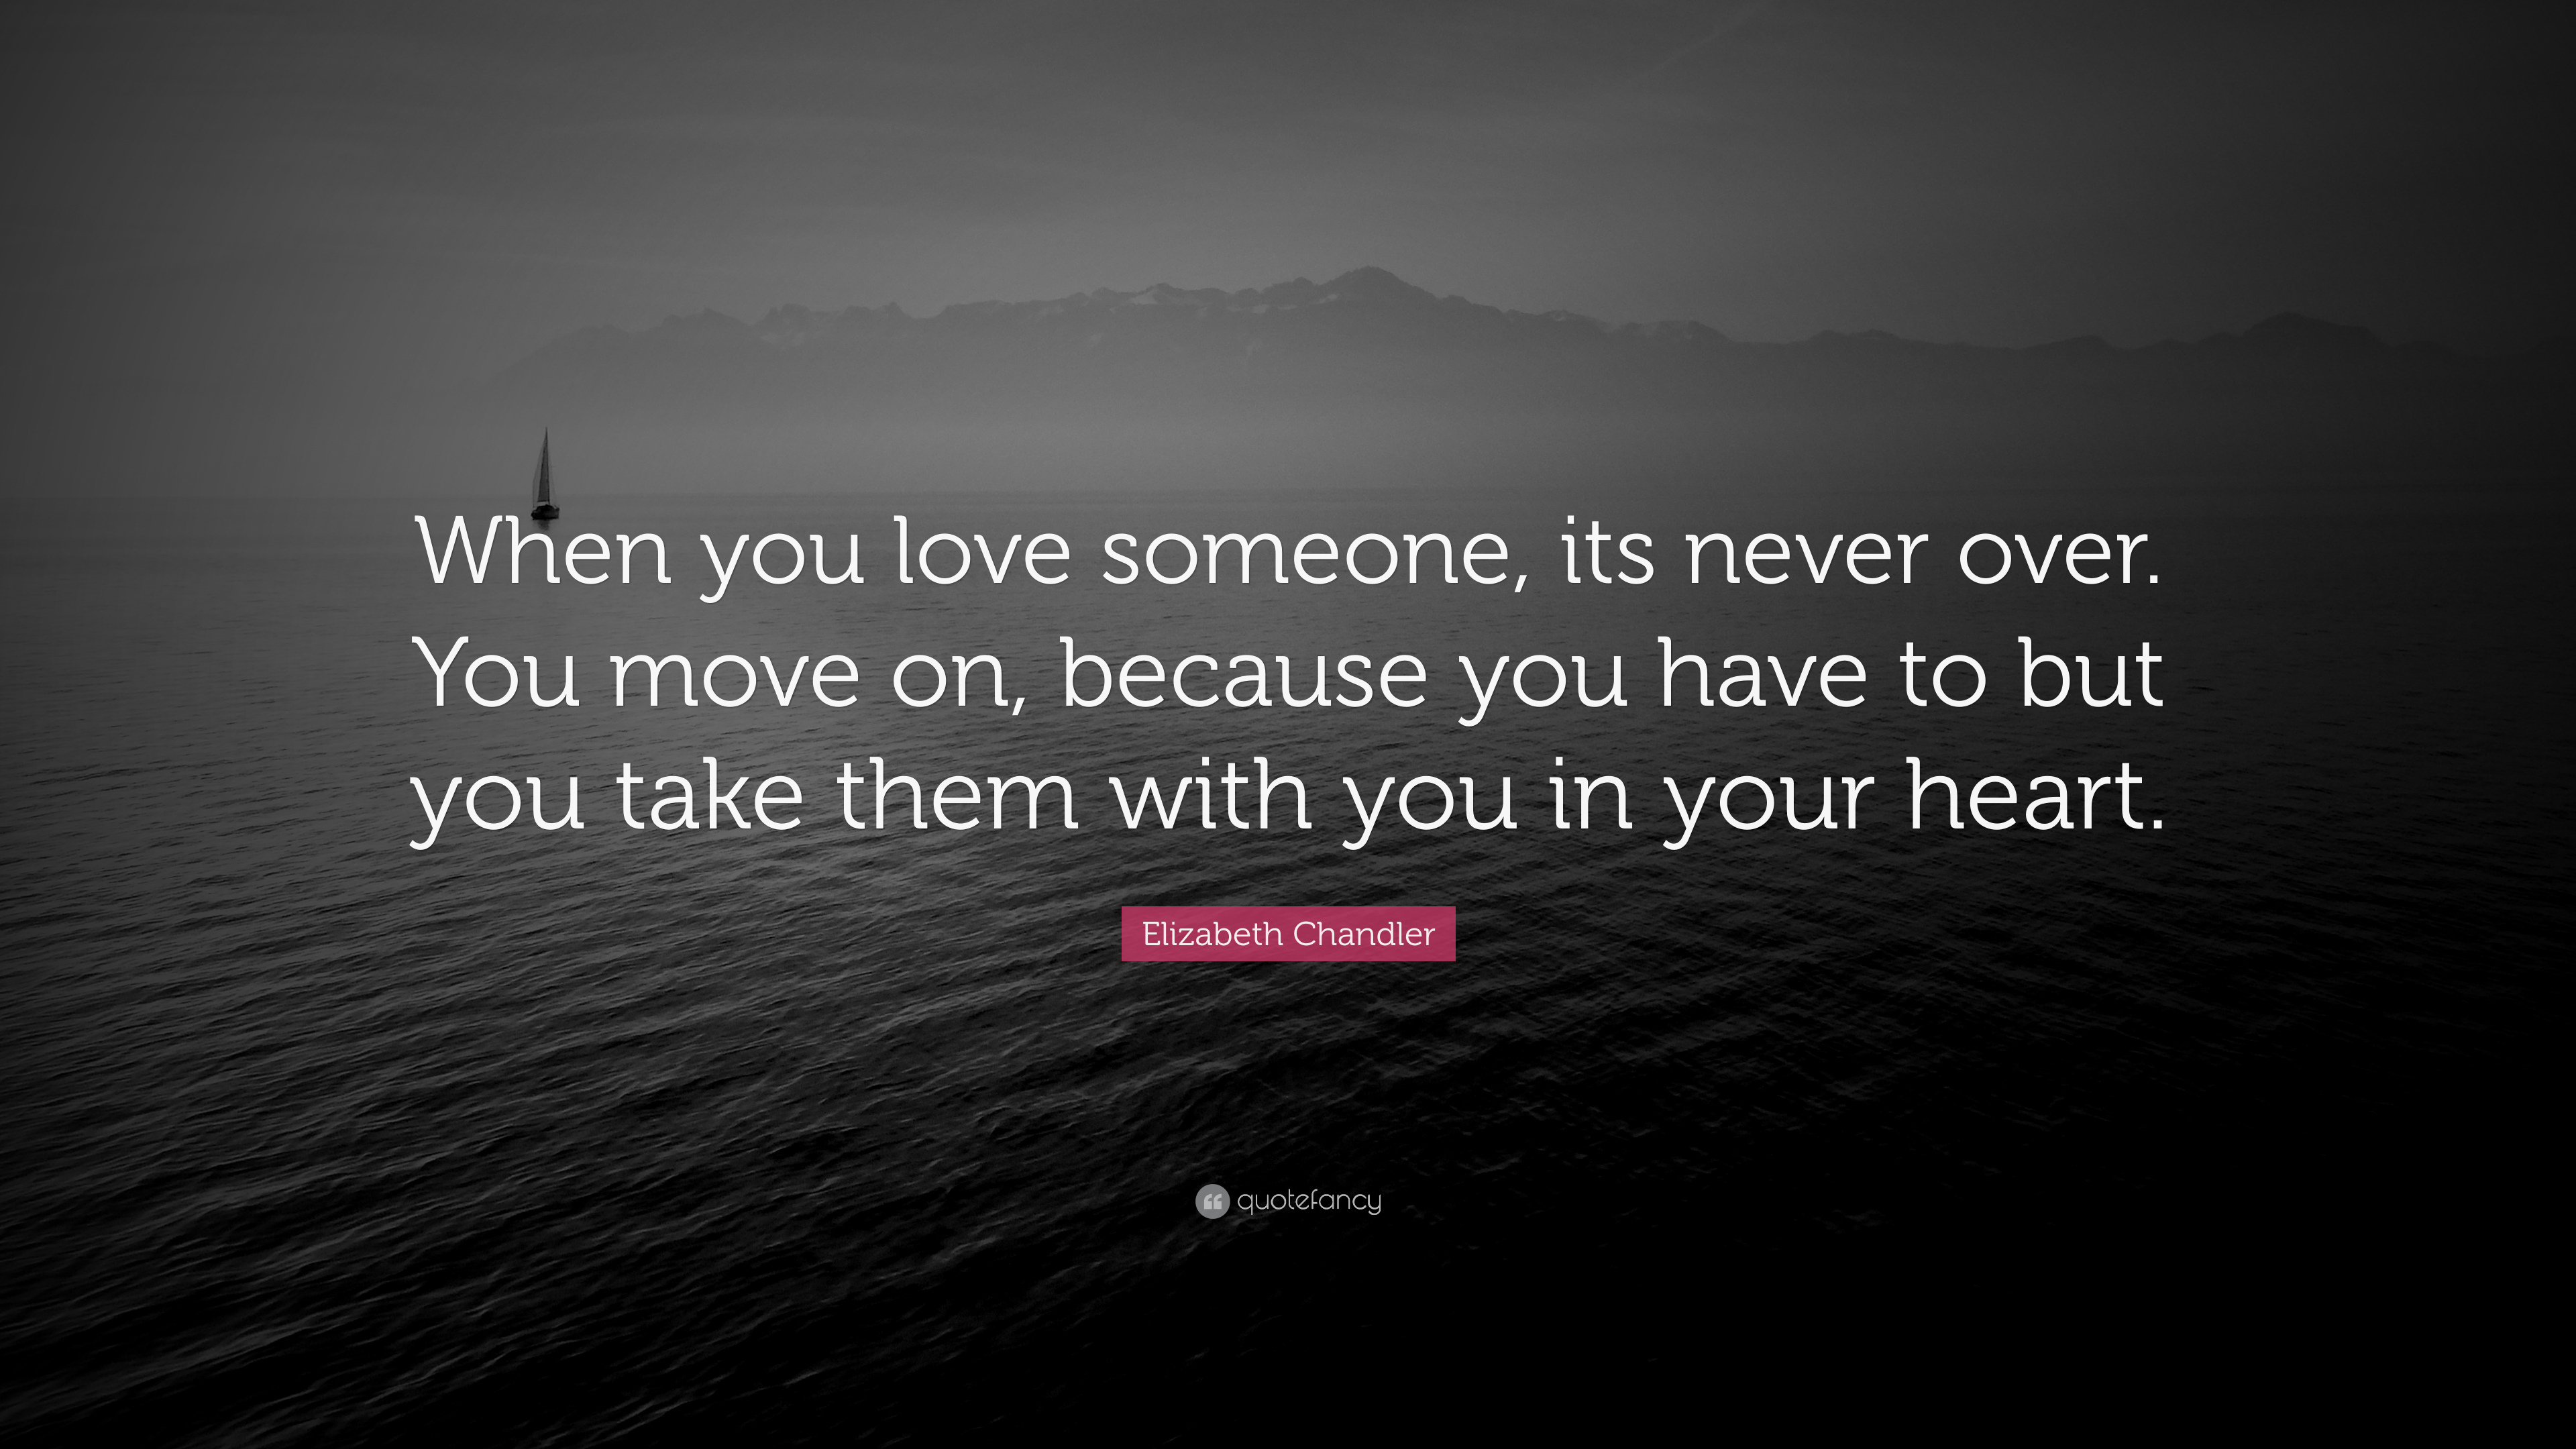 Elizabeth Chandler Quote: When you love someone, its